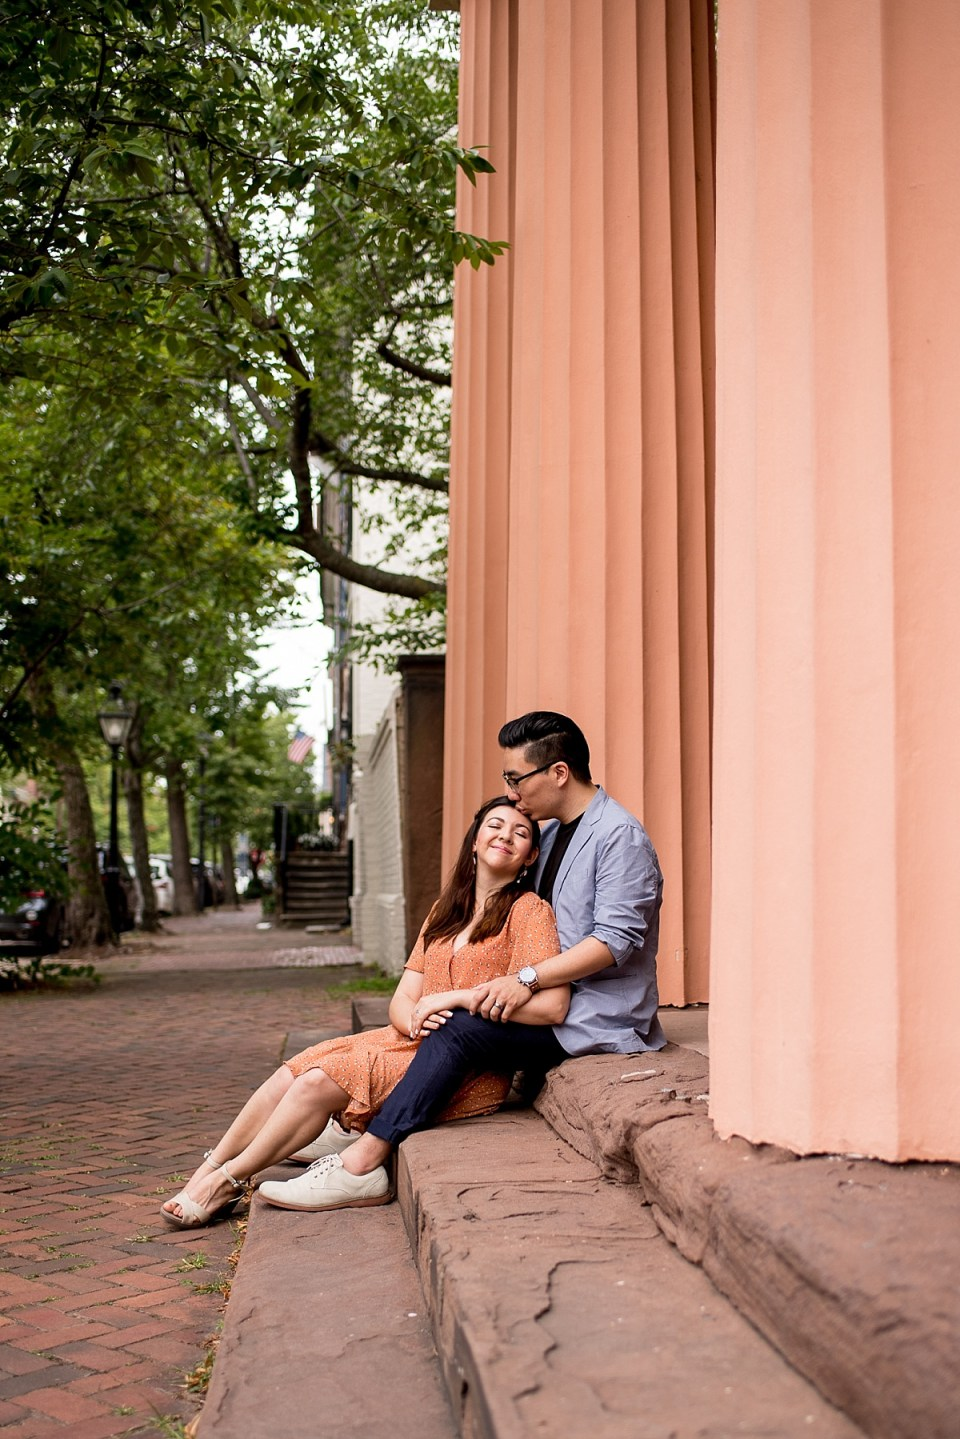 Old Town Alexnadria Engagement Session by Erin Tetterton